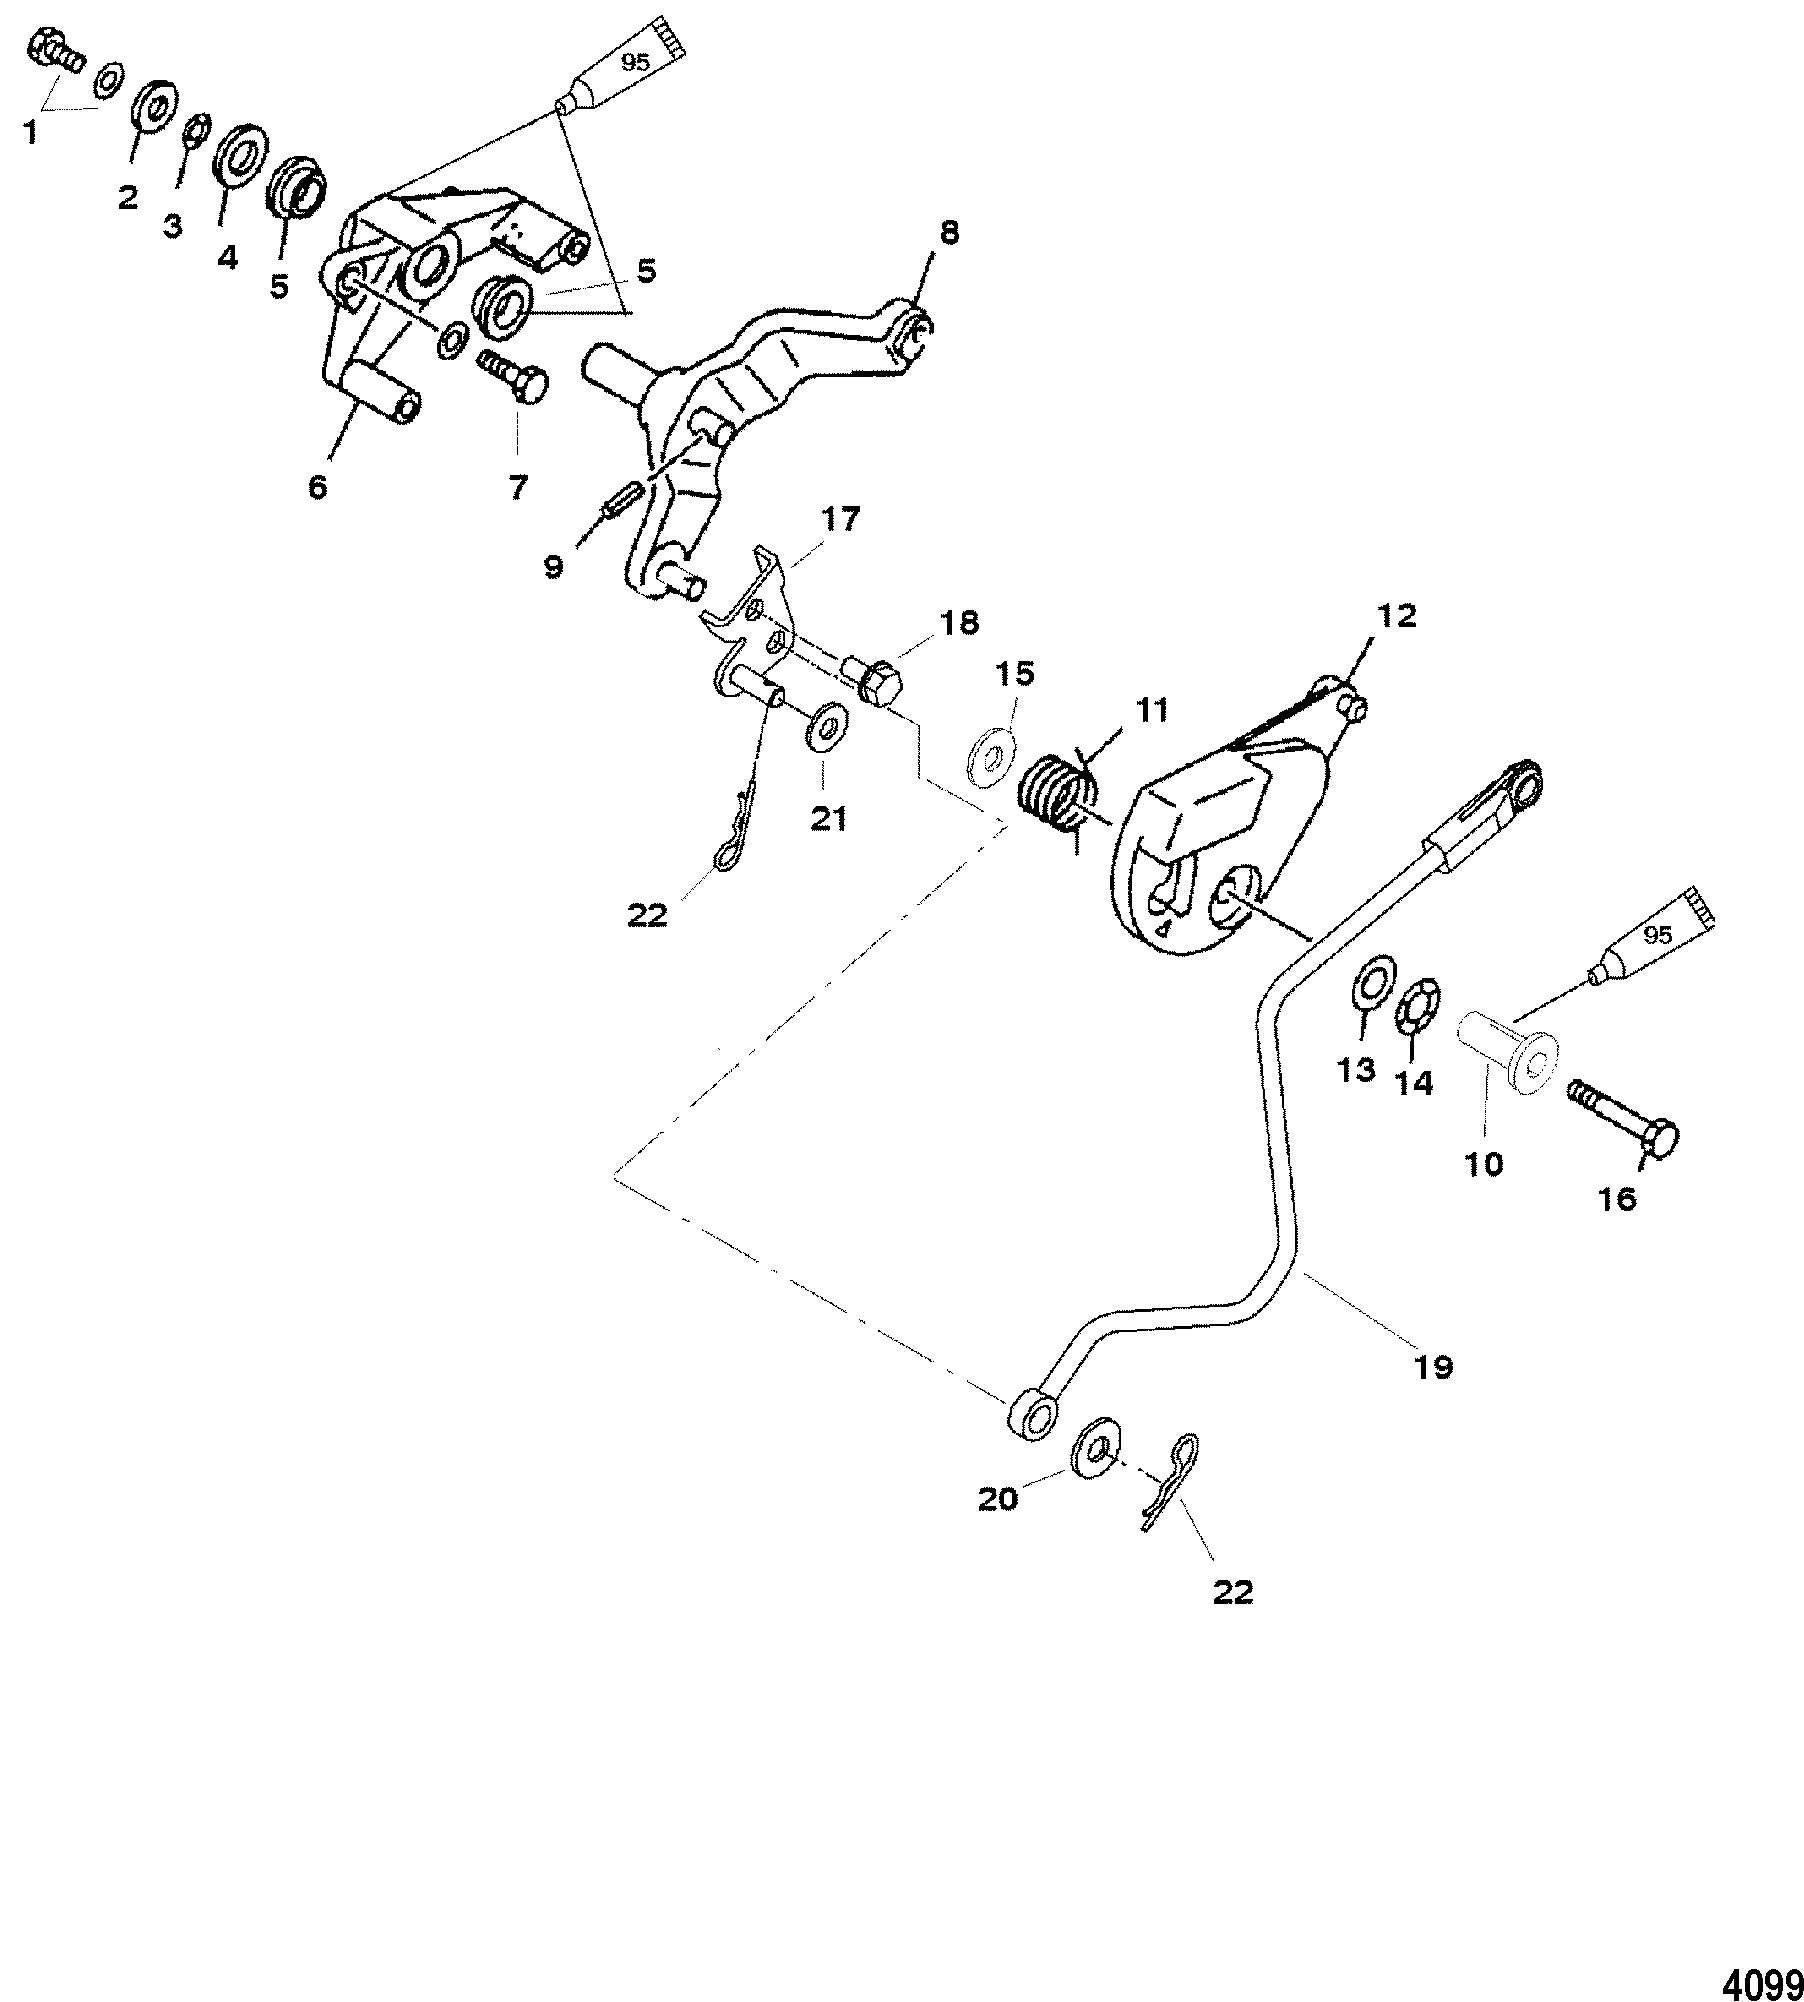 Edelbrock Carburetor Linkage Diagram, Edelbrock, Free